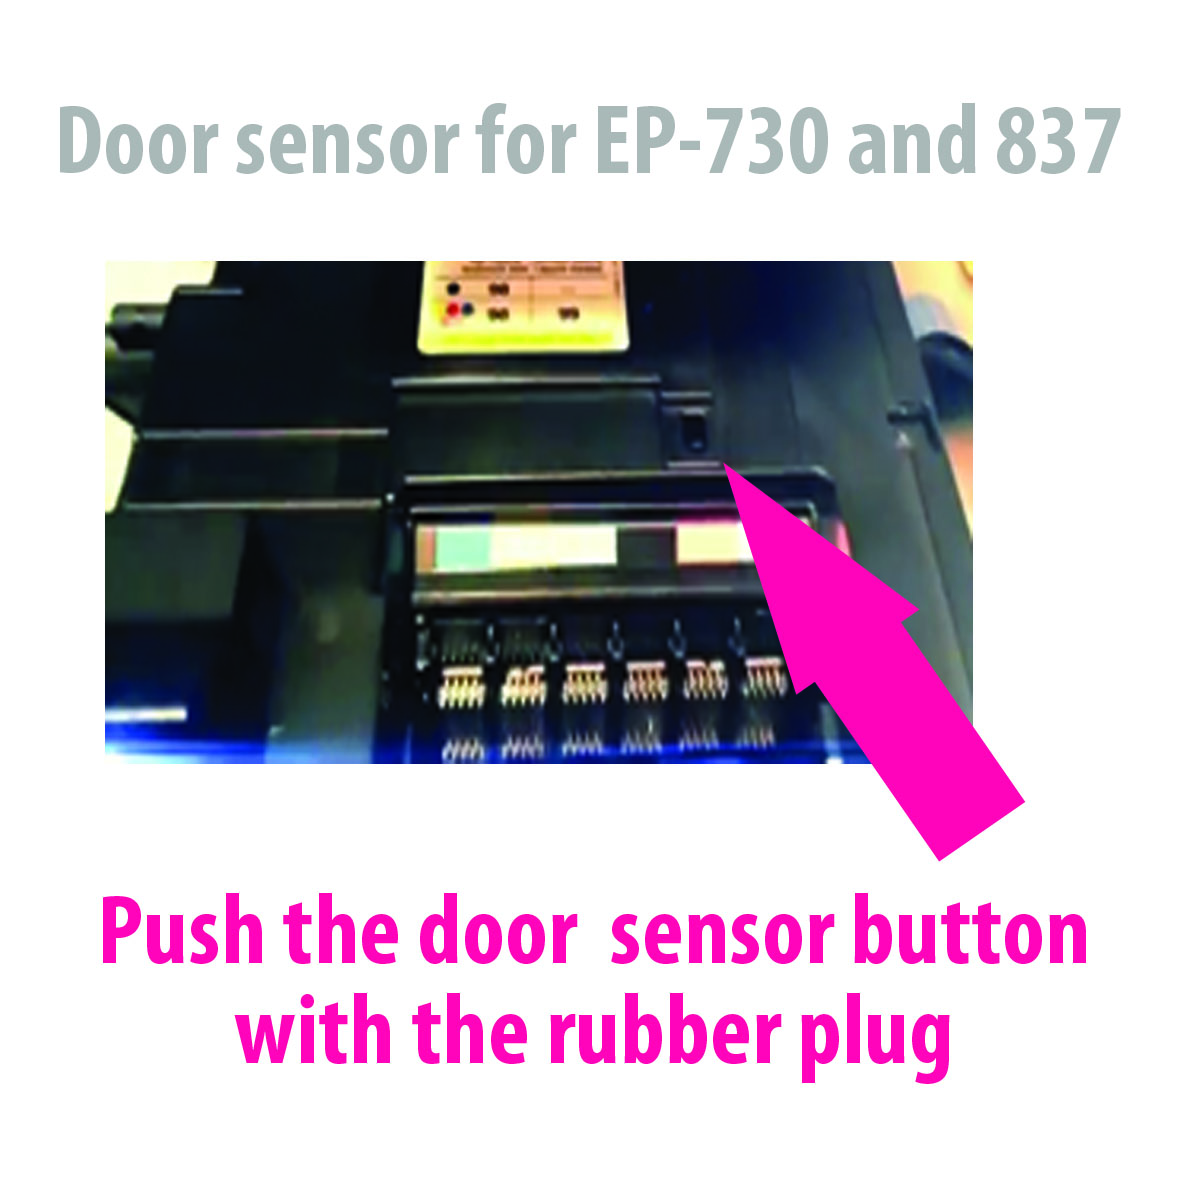 Door sensor for EP-730 and 837